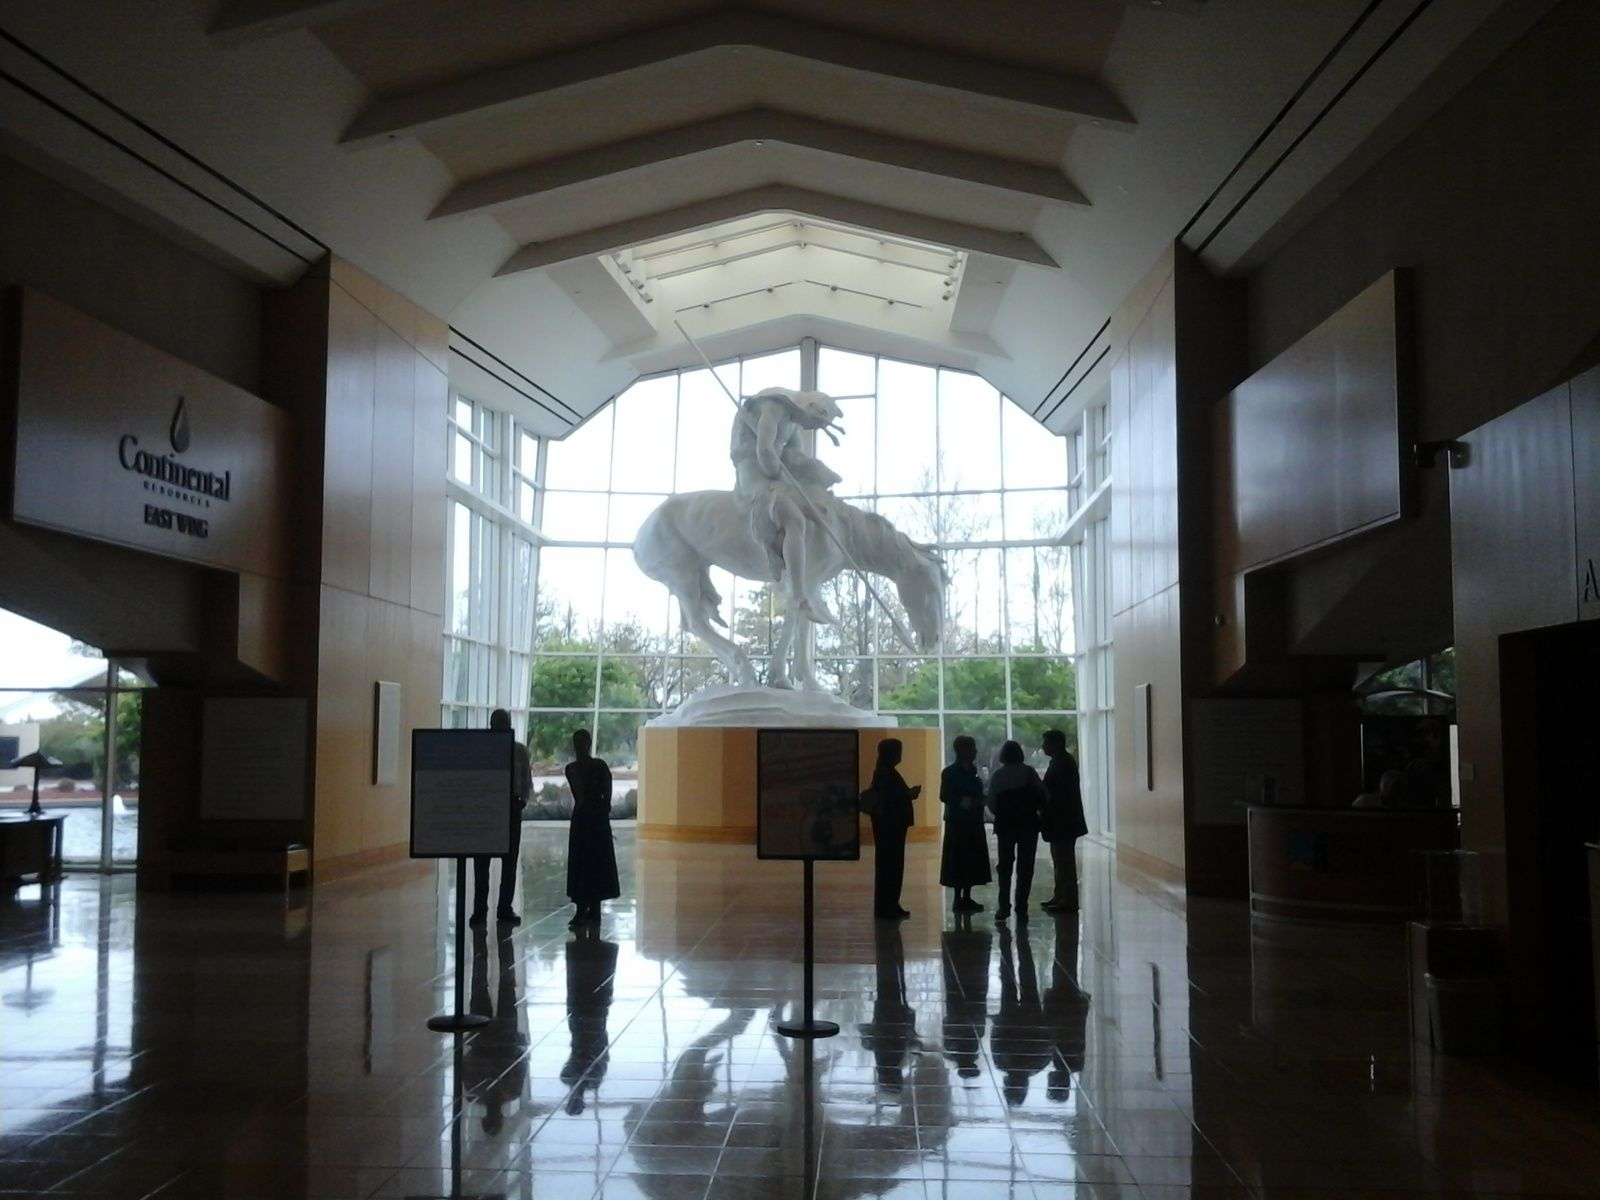 Day 4 - part 2 : let's go to the national cowboy and western heritage museum ...